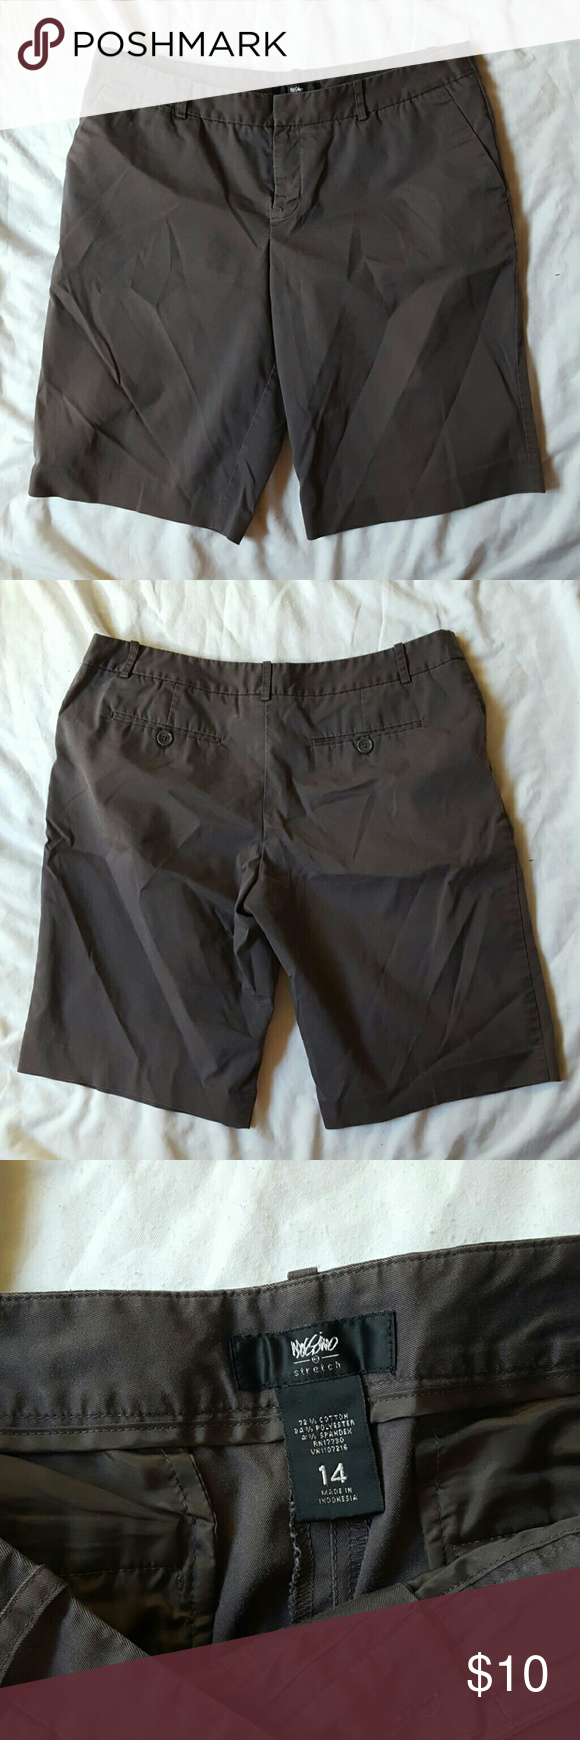 Classic Mossimo Stretch Shorts Classic mossimo shorts are always in style and ready for warm weather.  Size 14  11.5 inch inseam  72% cotton 34% polyester 4% spandex Mossimo Supply Co Shorts Bermudas